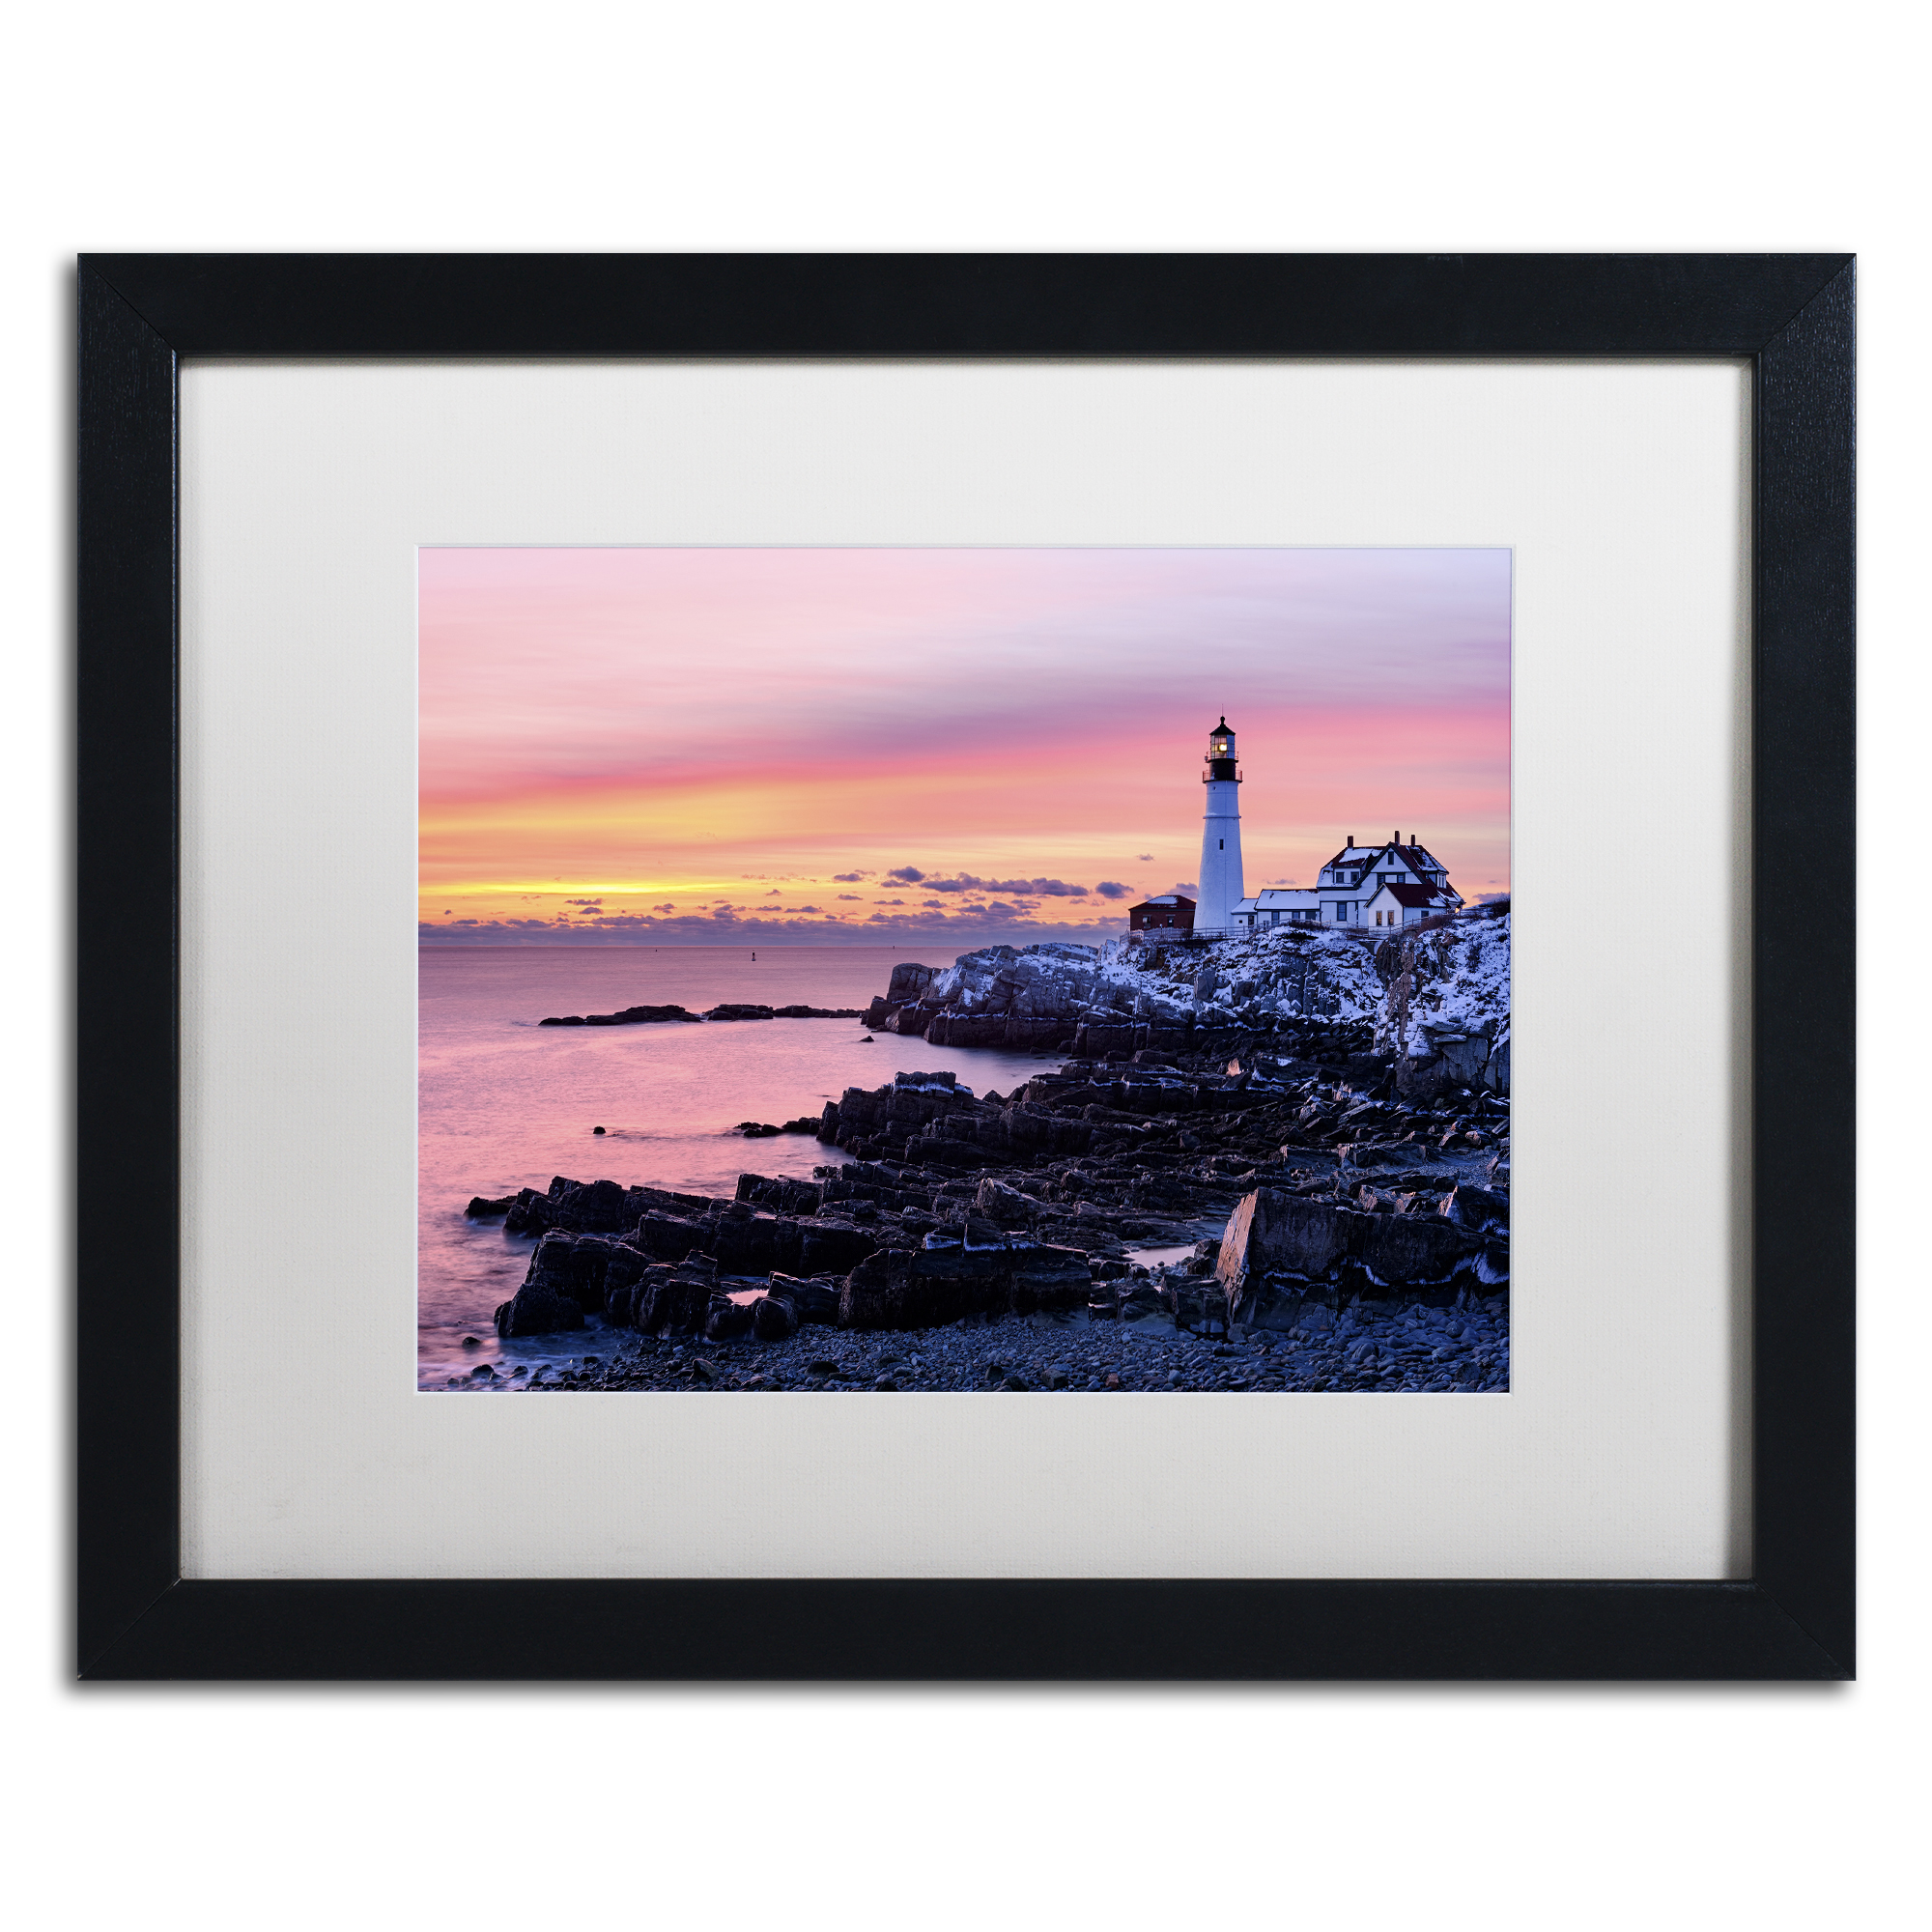 Michael Blanchette Photography 'Light of Dawn' Black Wooden Framed Art 18 x 22 Inches